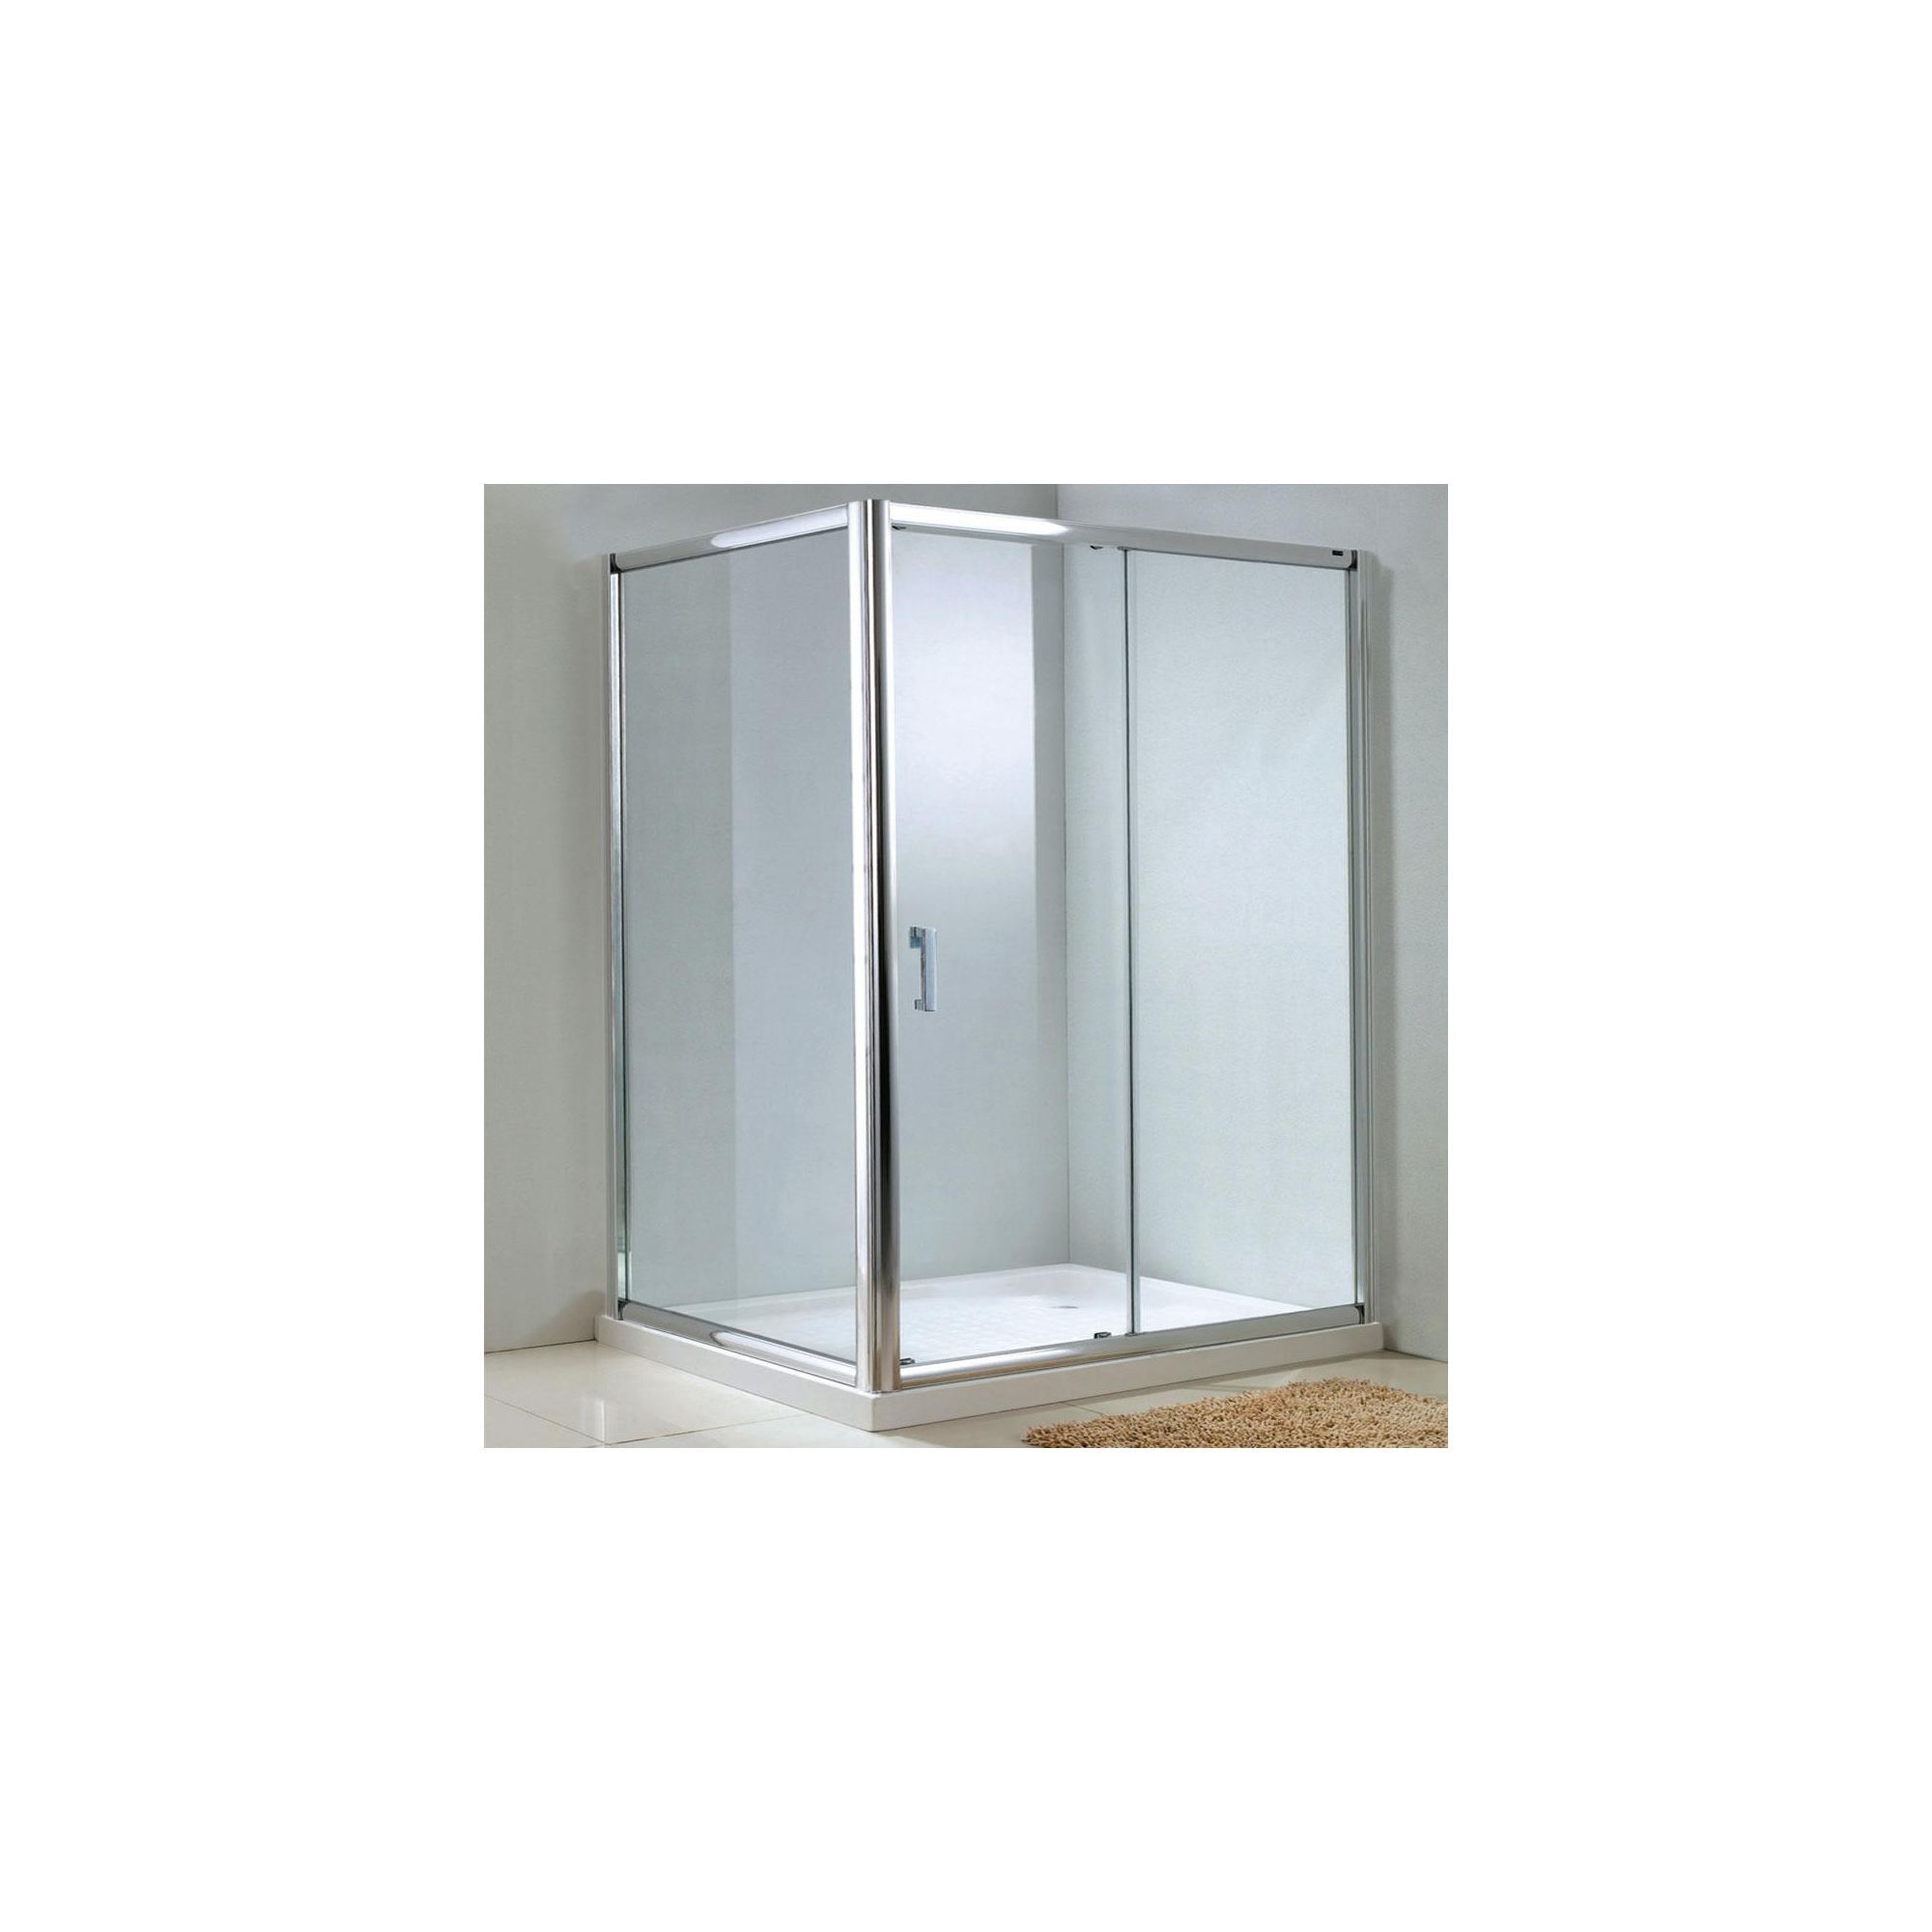 Duchy Style Single Sliding Door Shower Enclosure, 1200mm x 700mm, 6mm Glass, Low Profile Tray at Tesco Direct